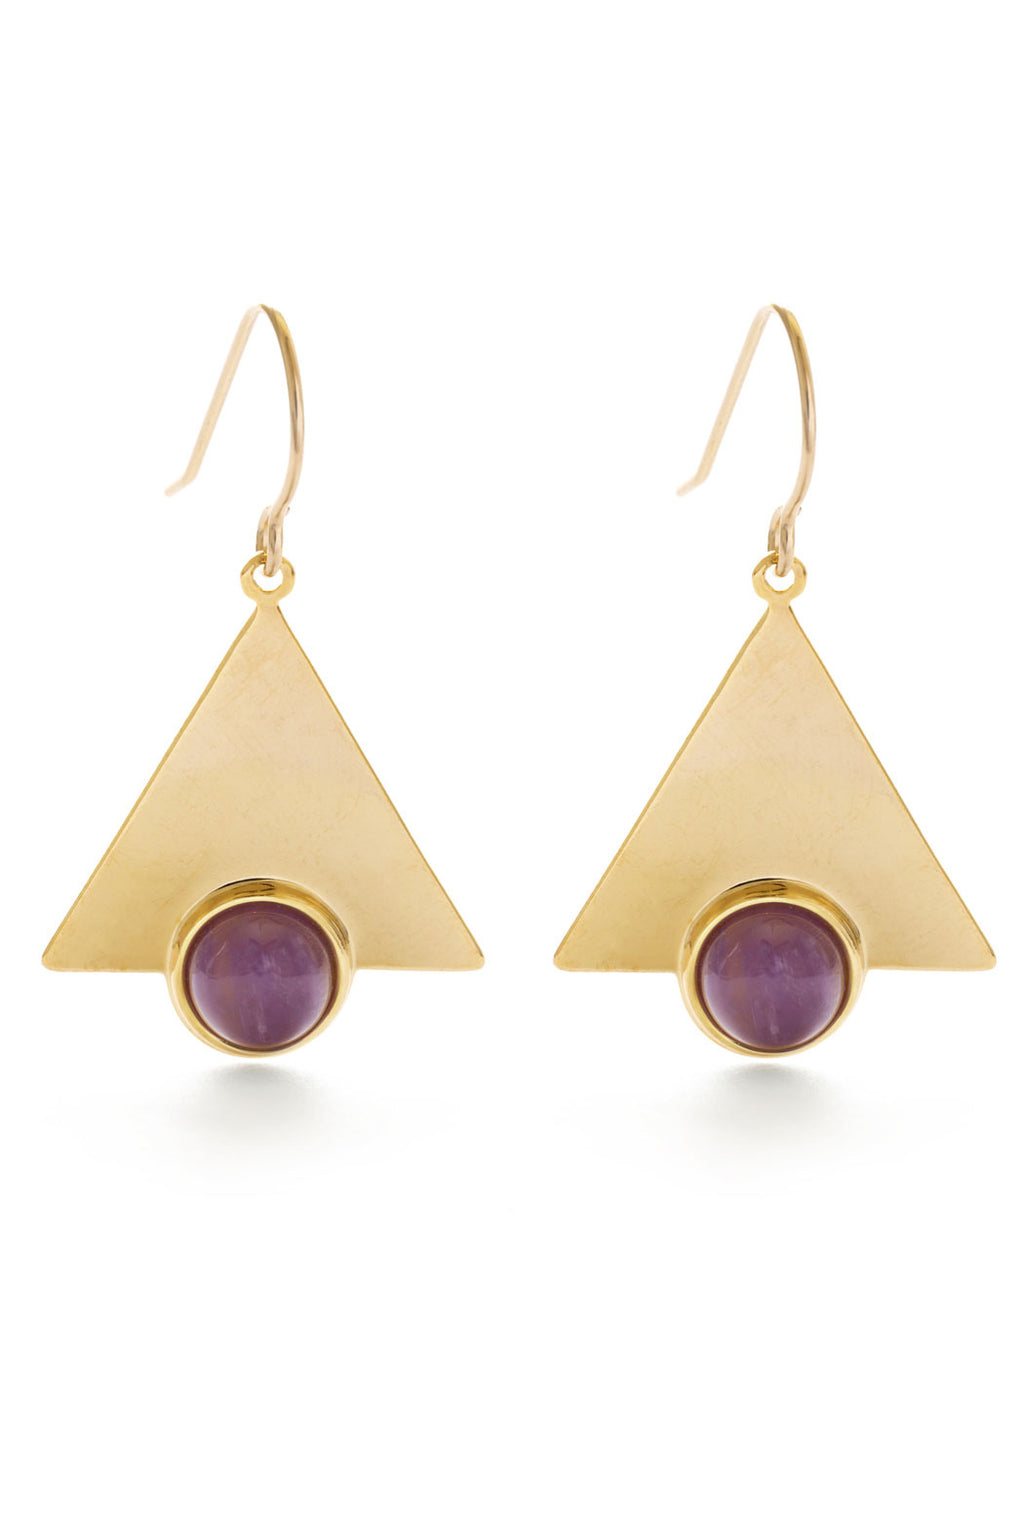 Amano Studio Mystic Triangle Earrings - Amethyst